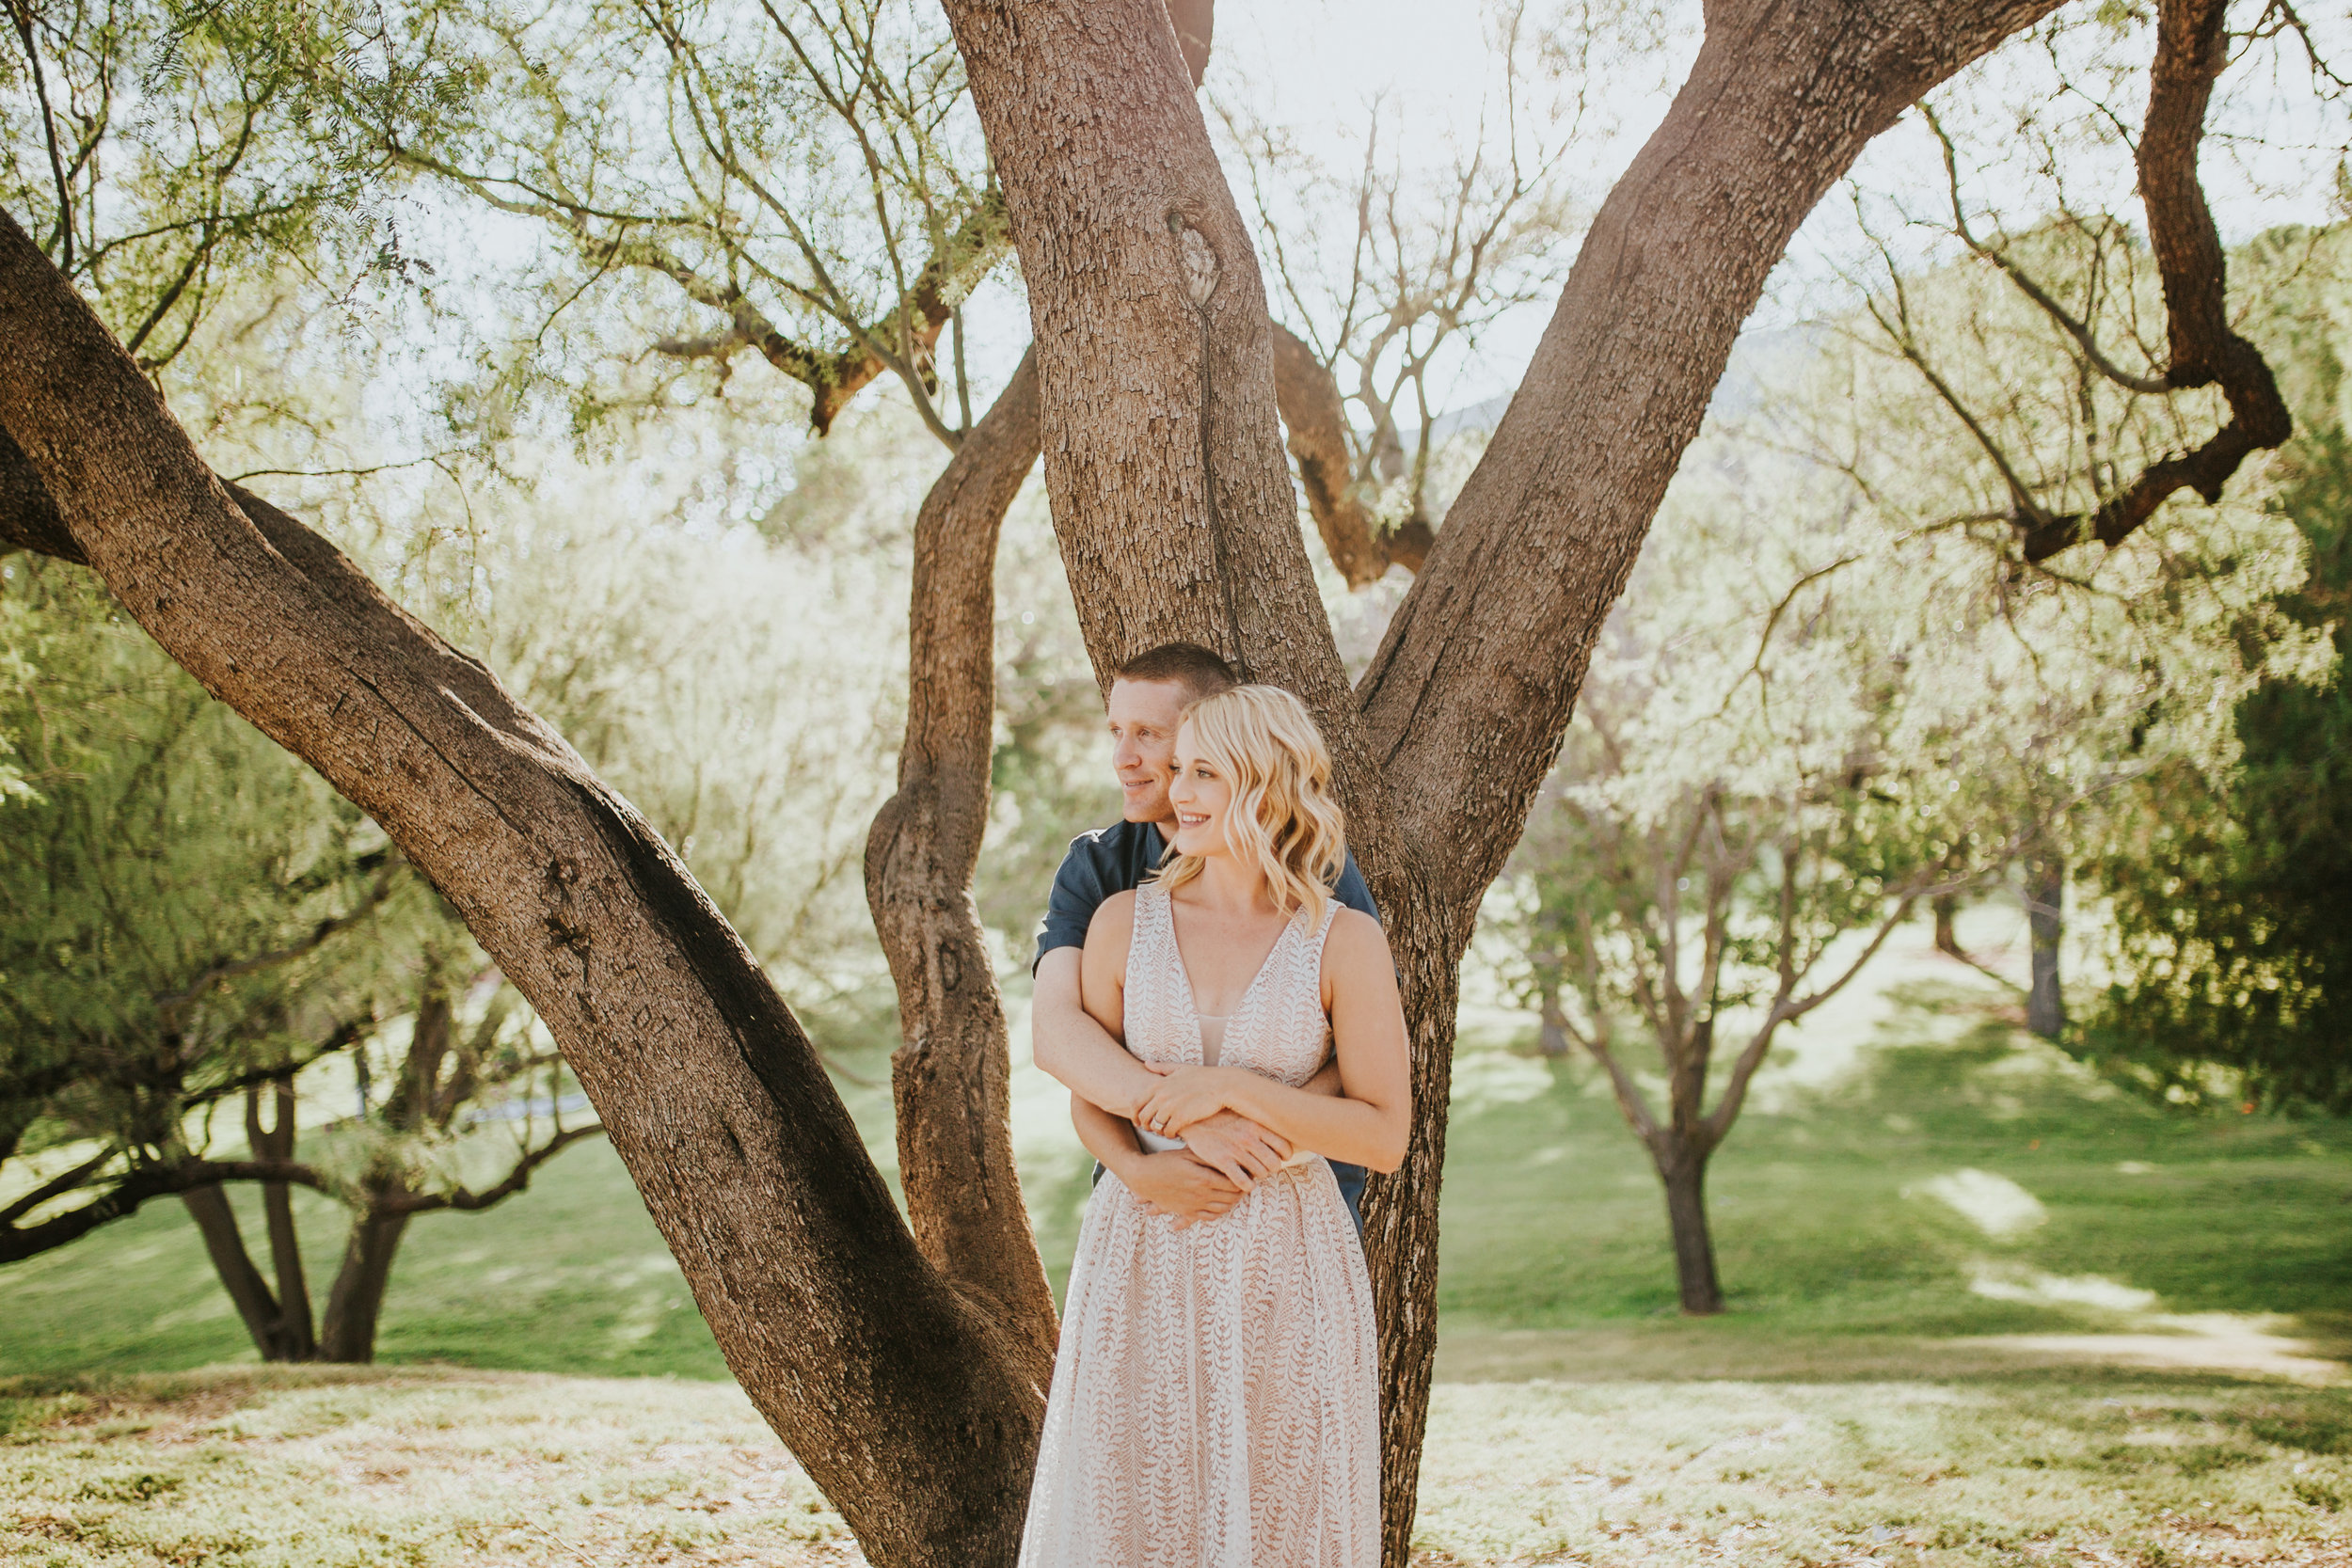 el-paso-memorial-park-engagement-sparrow-and-gold-photography-7